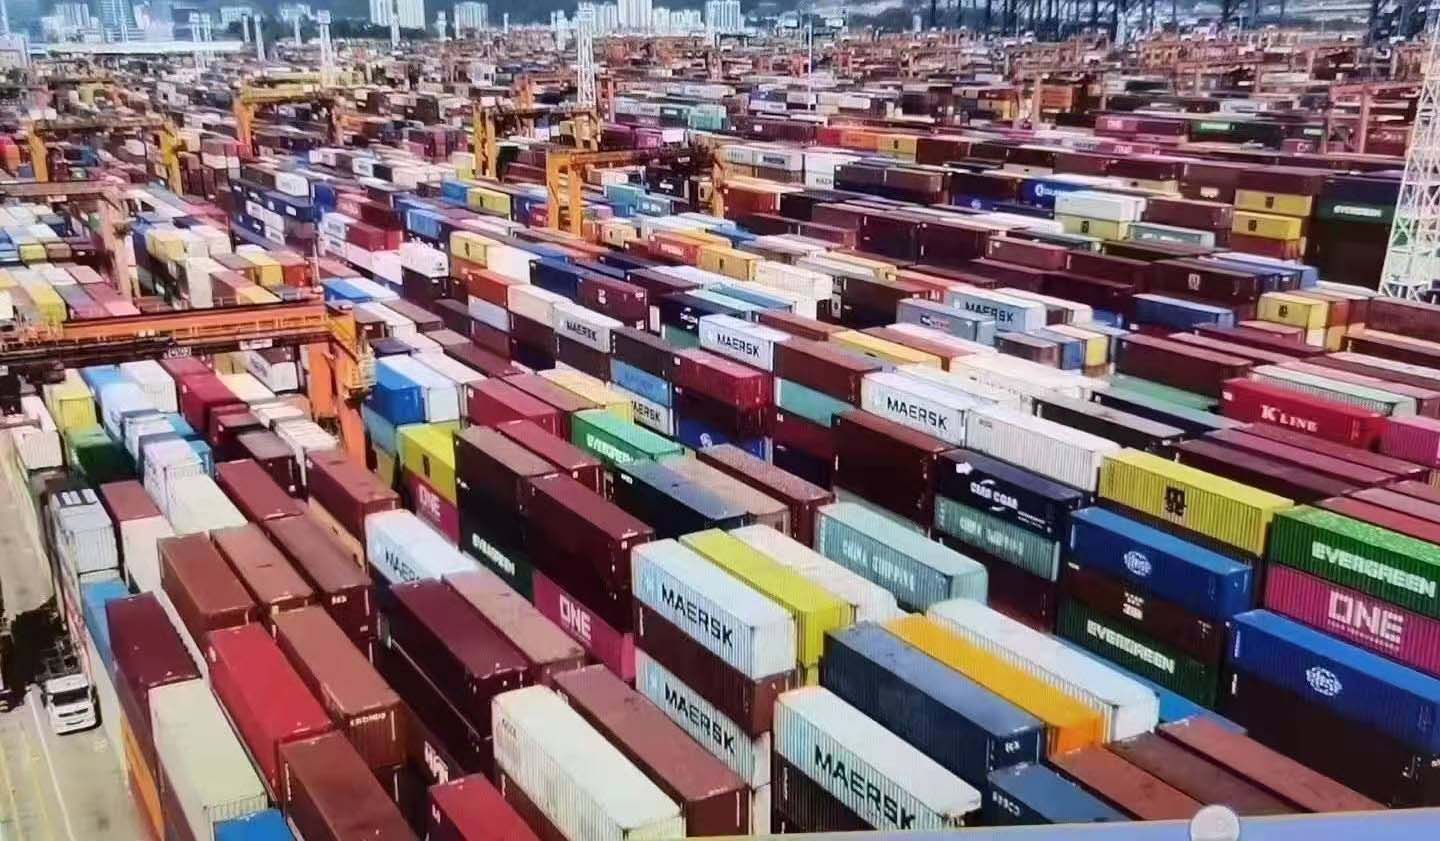 Containers at Port of Yantian